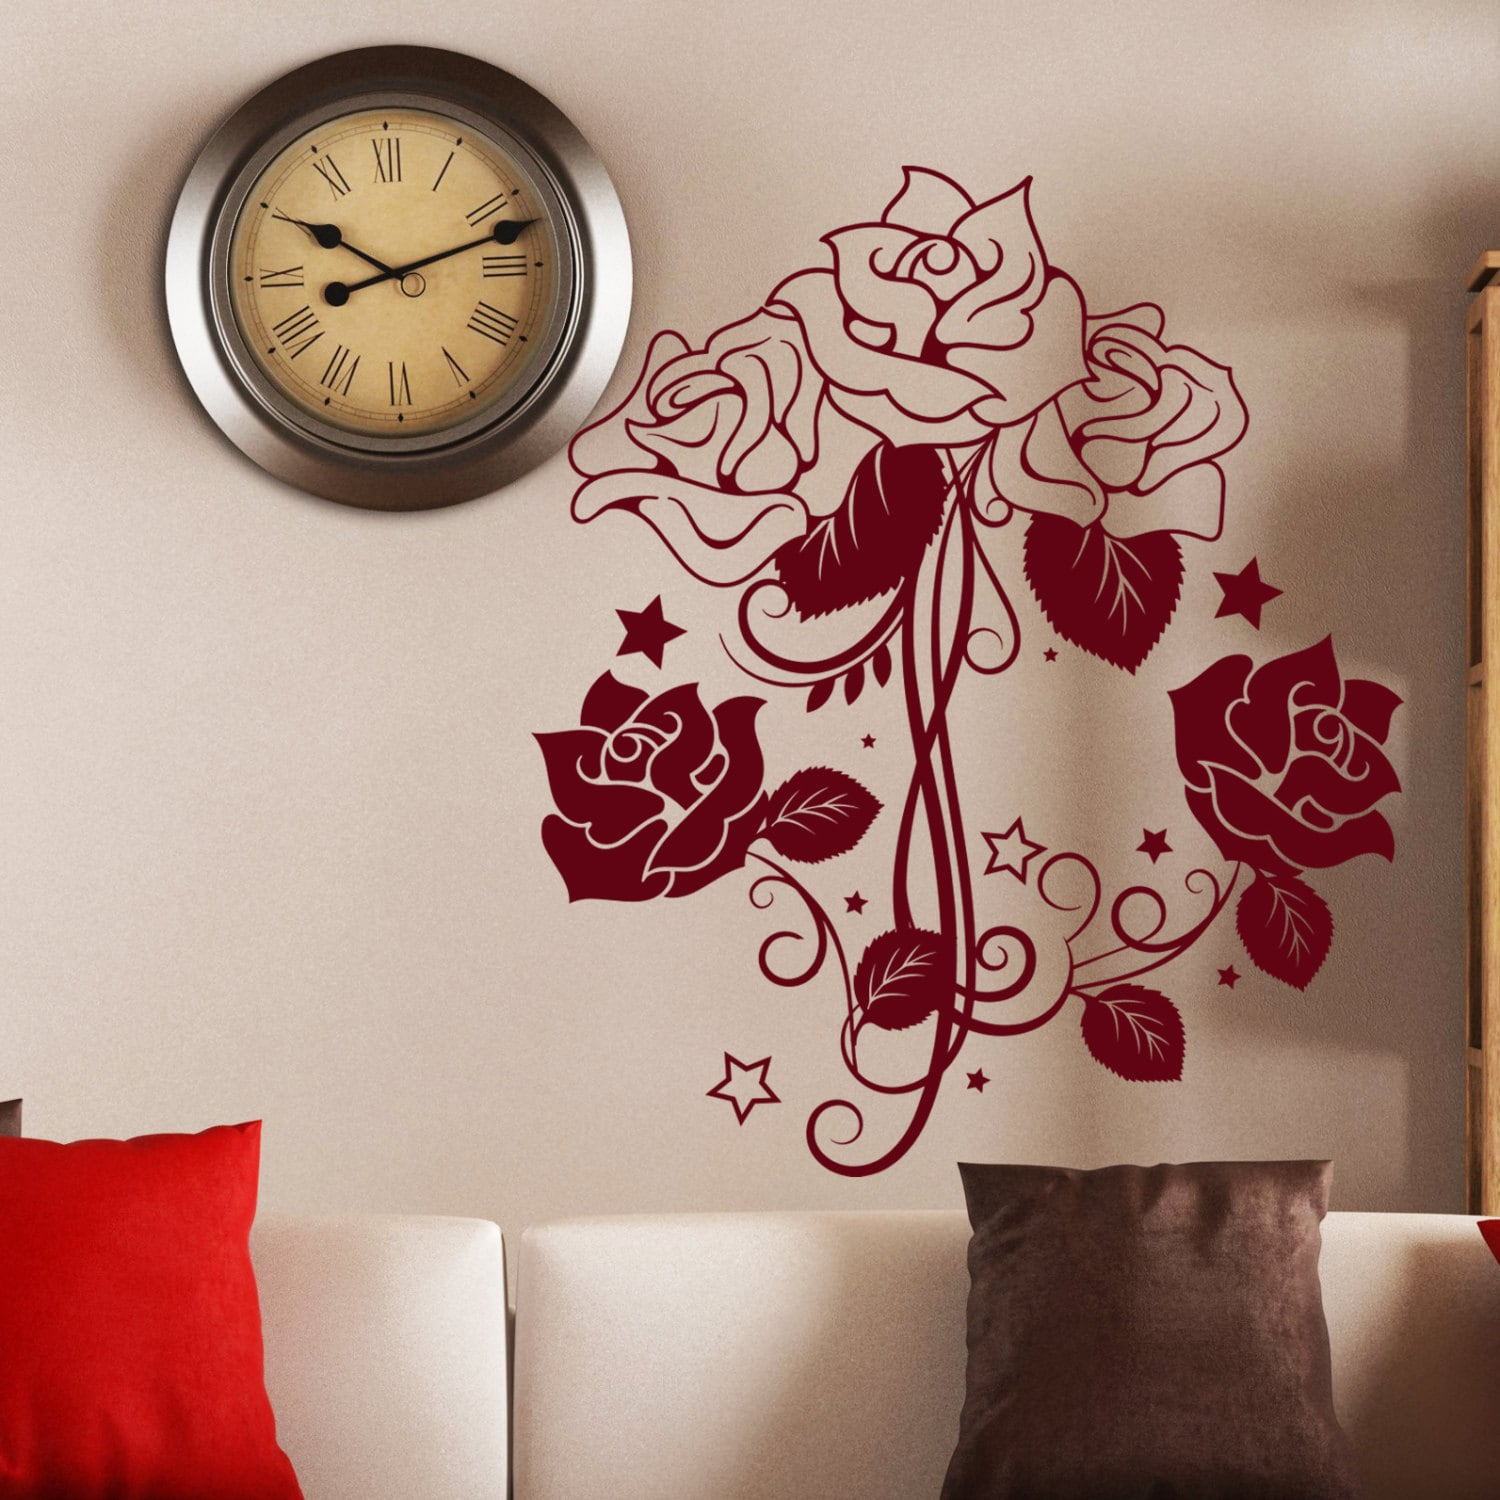 Shop For Wall Decal Flower Roses Design Decals For Florists Bedroom Bathroom Vinyl Stickers Decor Red Get Free Delivery On Everything At Overstock Your Online Art Gallery Shop Get 5 In Rewards With Club O 11180405